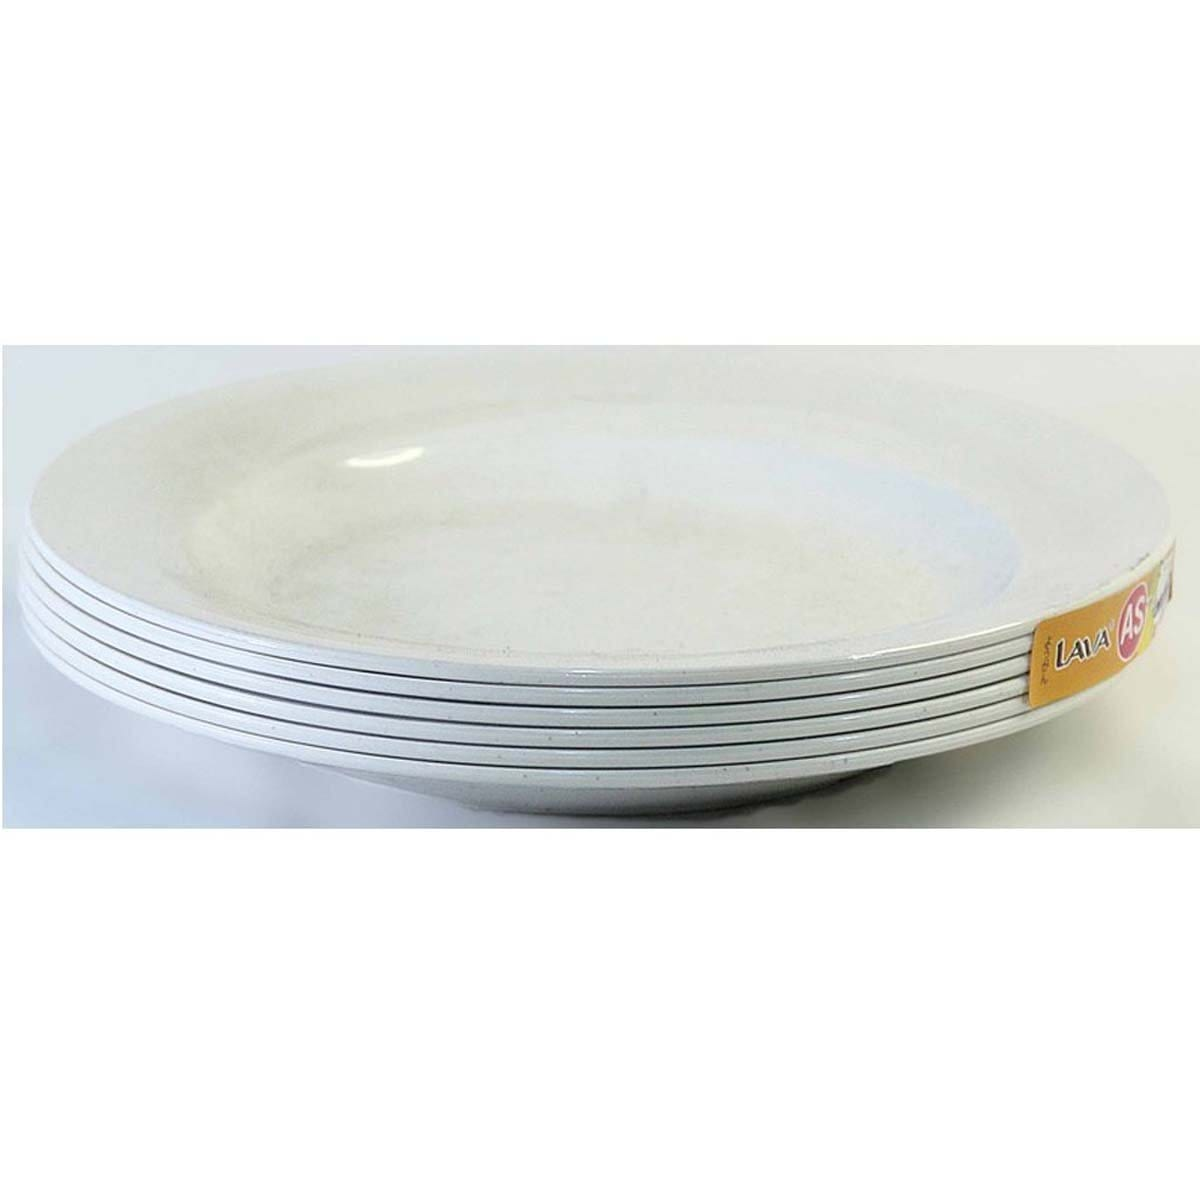 PLT1208 LAVA Shallow AS Plate (6pcs) 8 inches